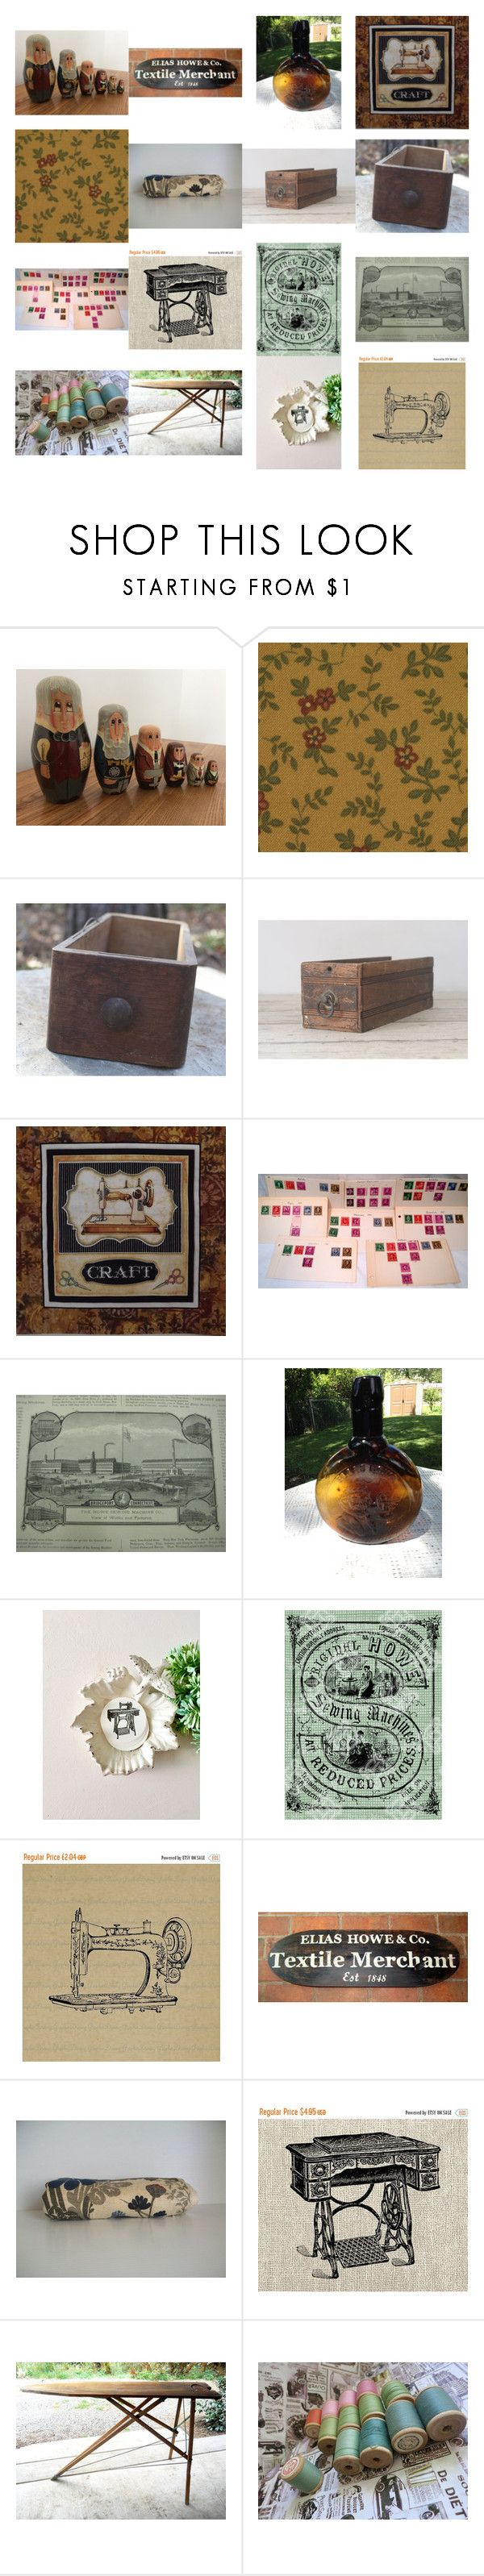 """""""A Tribute to Elias Howe"""" by kateduvall ❤ liked on Polyvore featuring interior, interiors, interior design, home, home decor, interior decorating, Howe and vintage"""